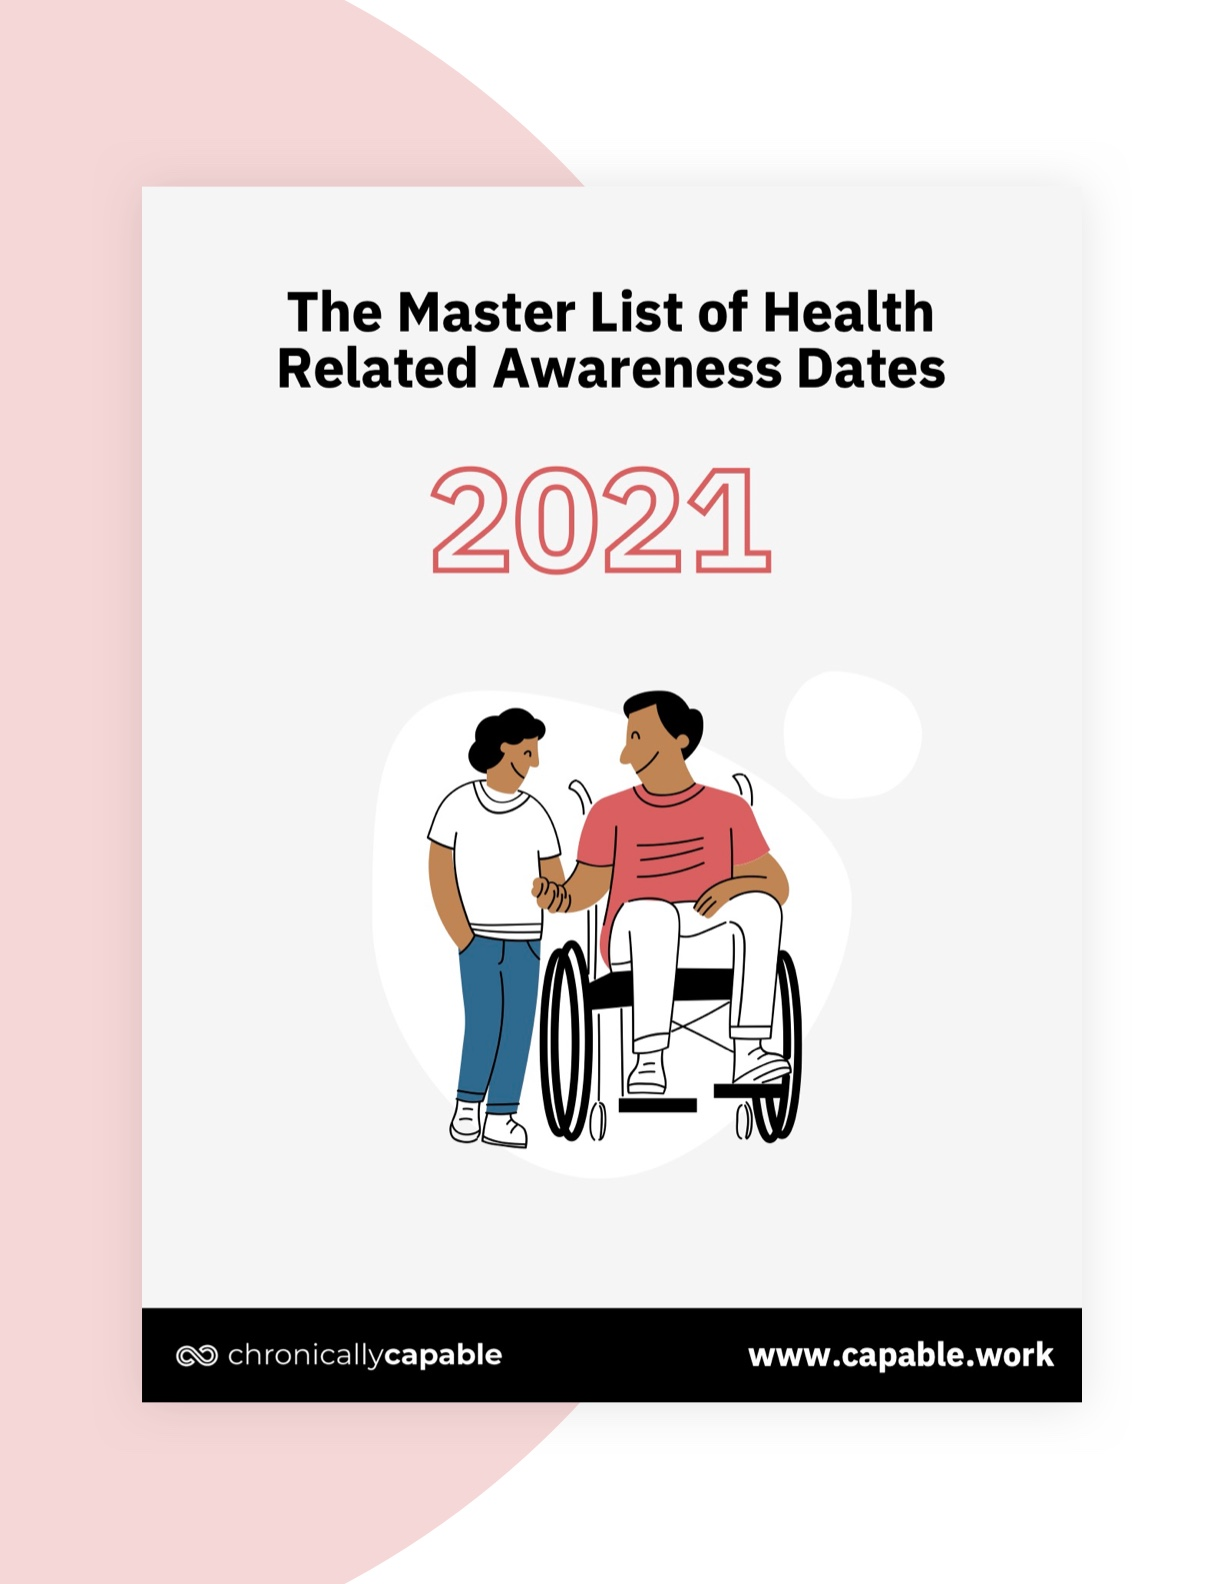 The Master List of Health Related Awareness Dates by Chronically Capable